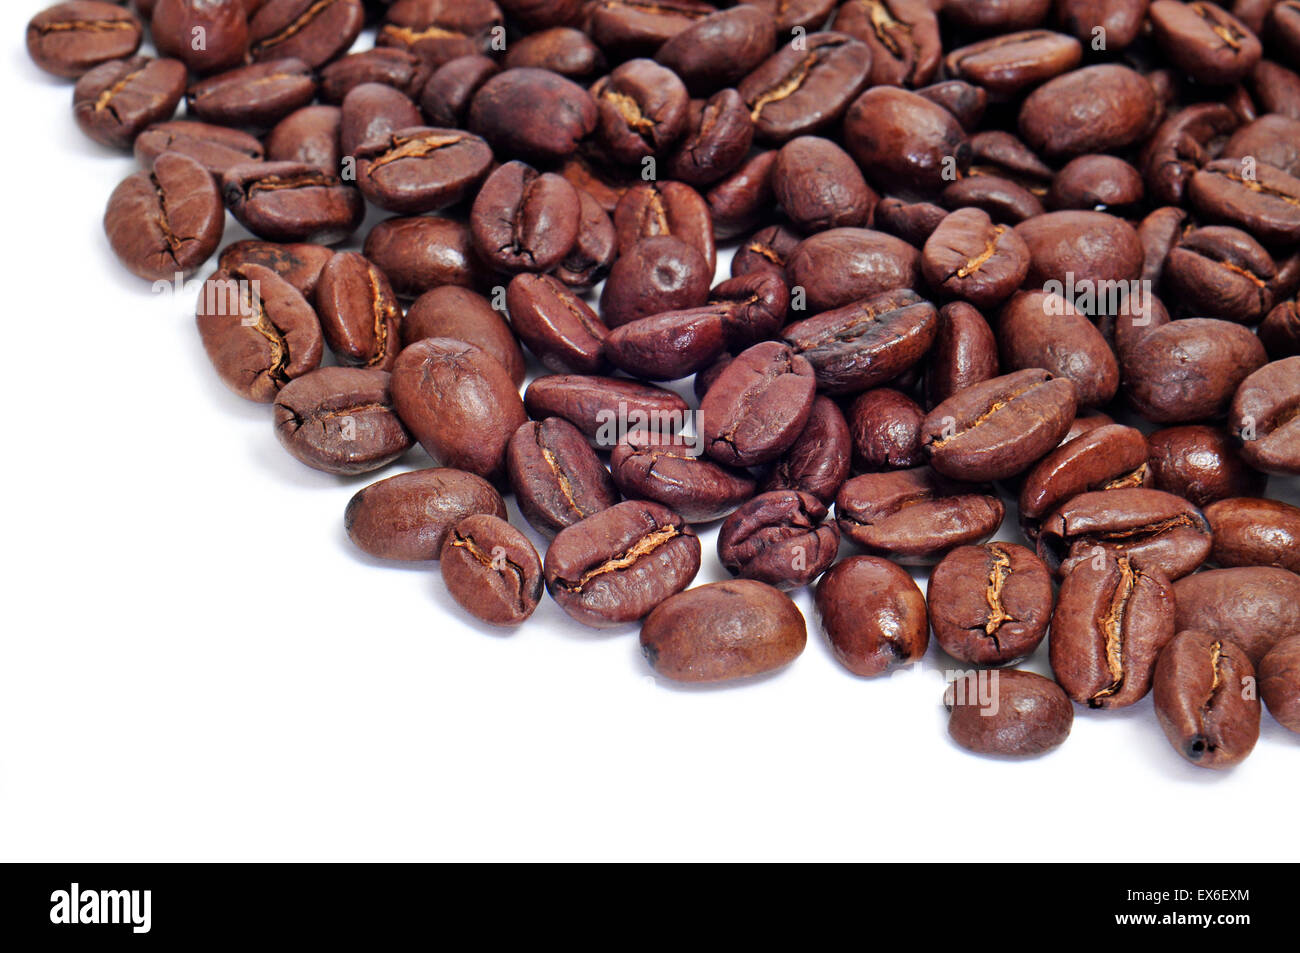 a pile of roasted coffee beans on a white background - Stock Image